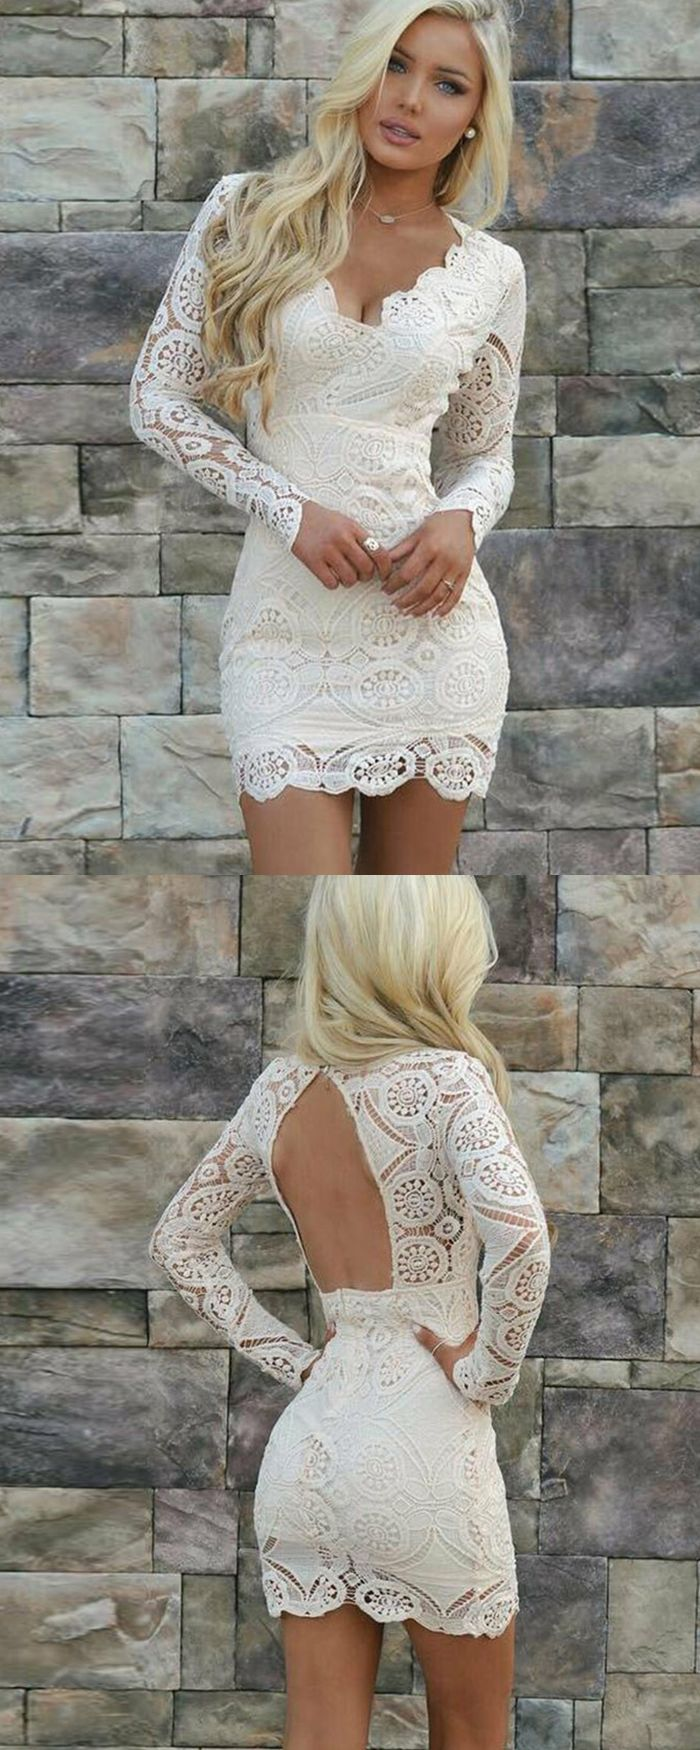 703e47f89 white tight lace homecoming dress, elegant short prom dress with long  sleeves